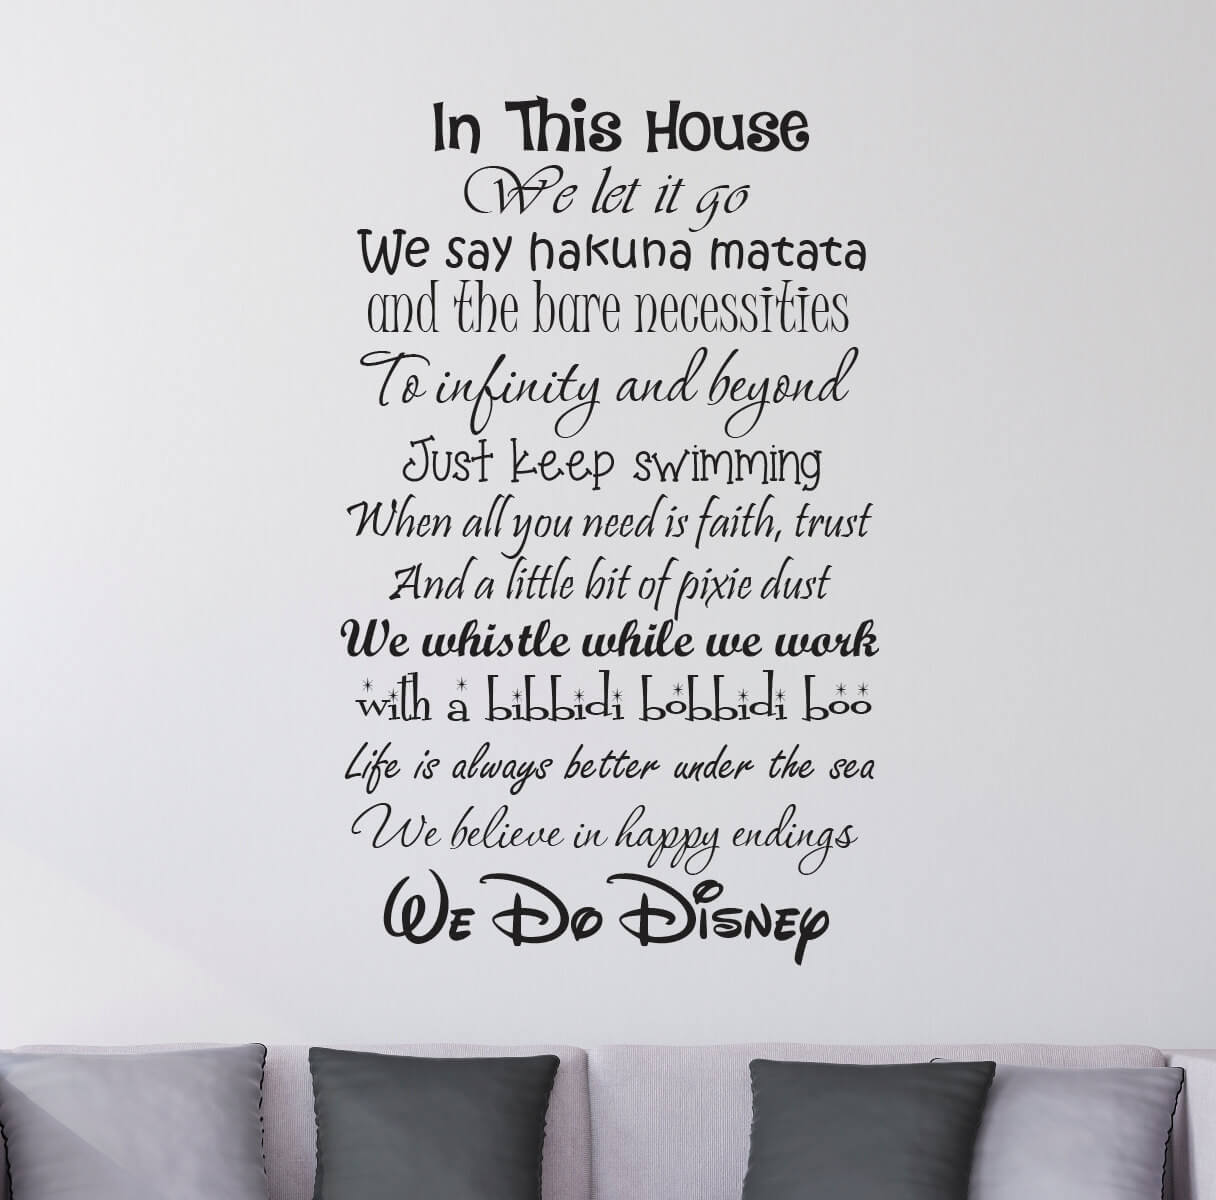 In This House We Do Disney Wall Stickers Decals Part 67